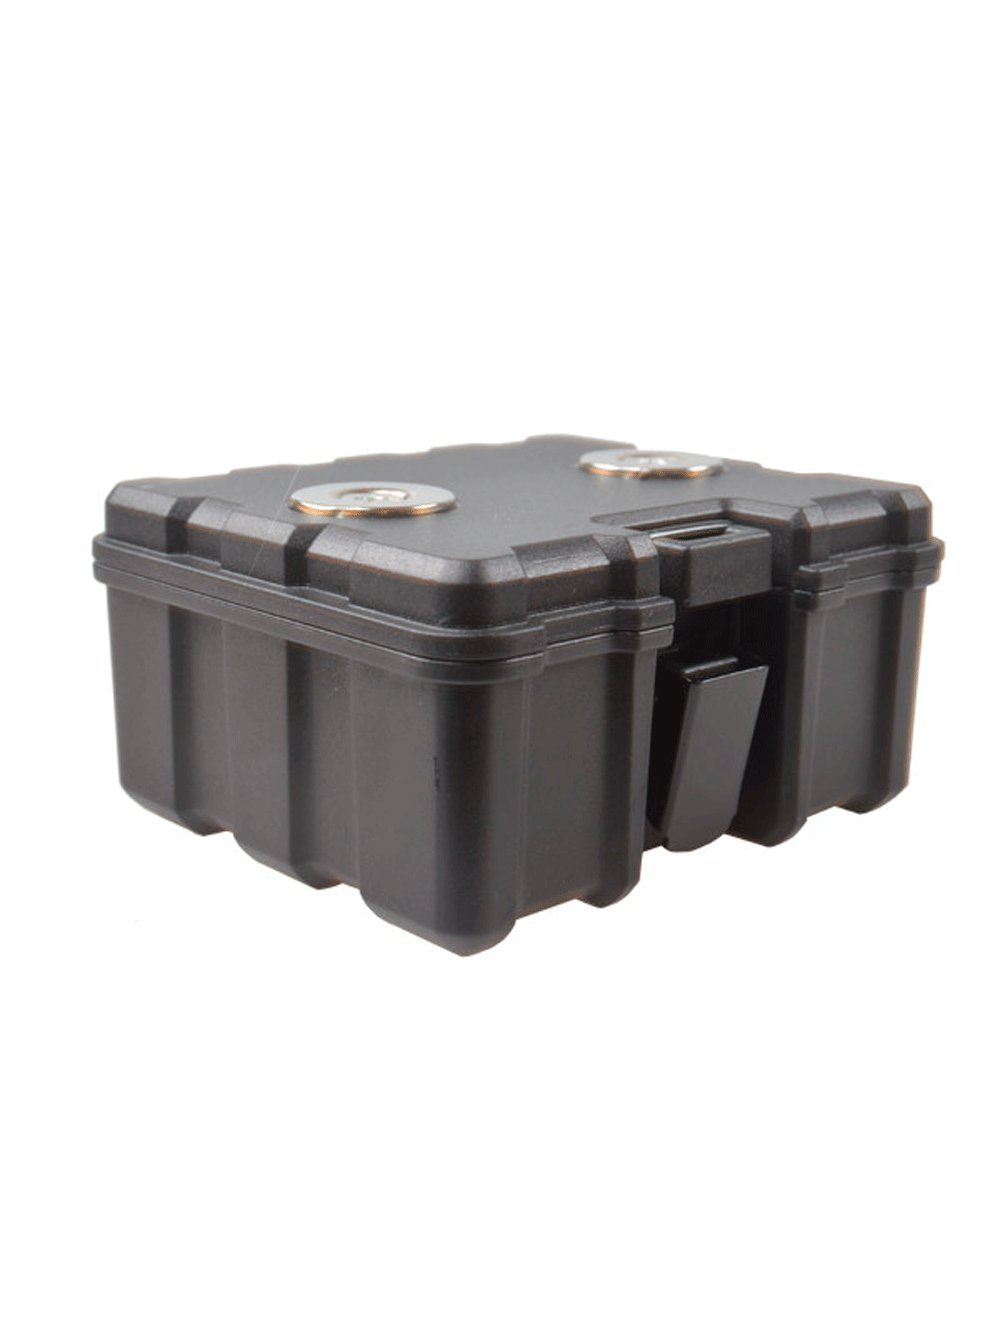 Magnets stick to bottom of car Magnetic Hidden storage box